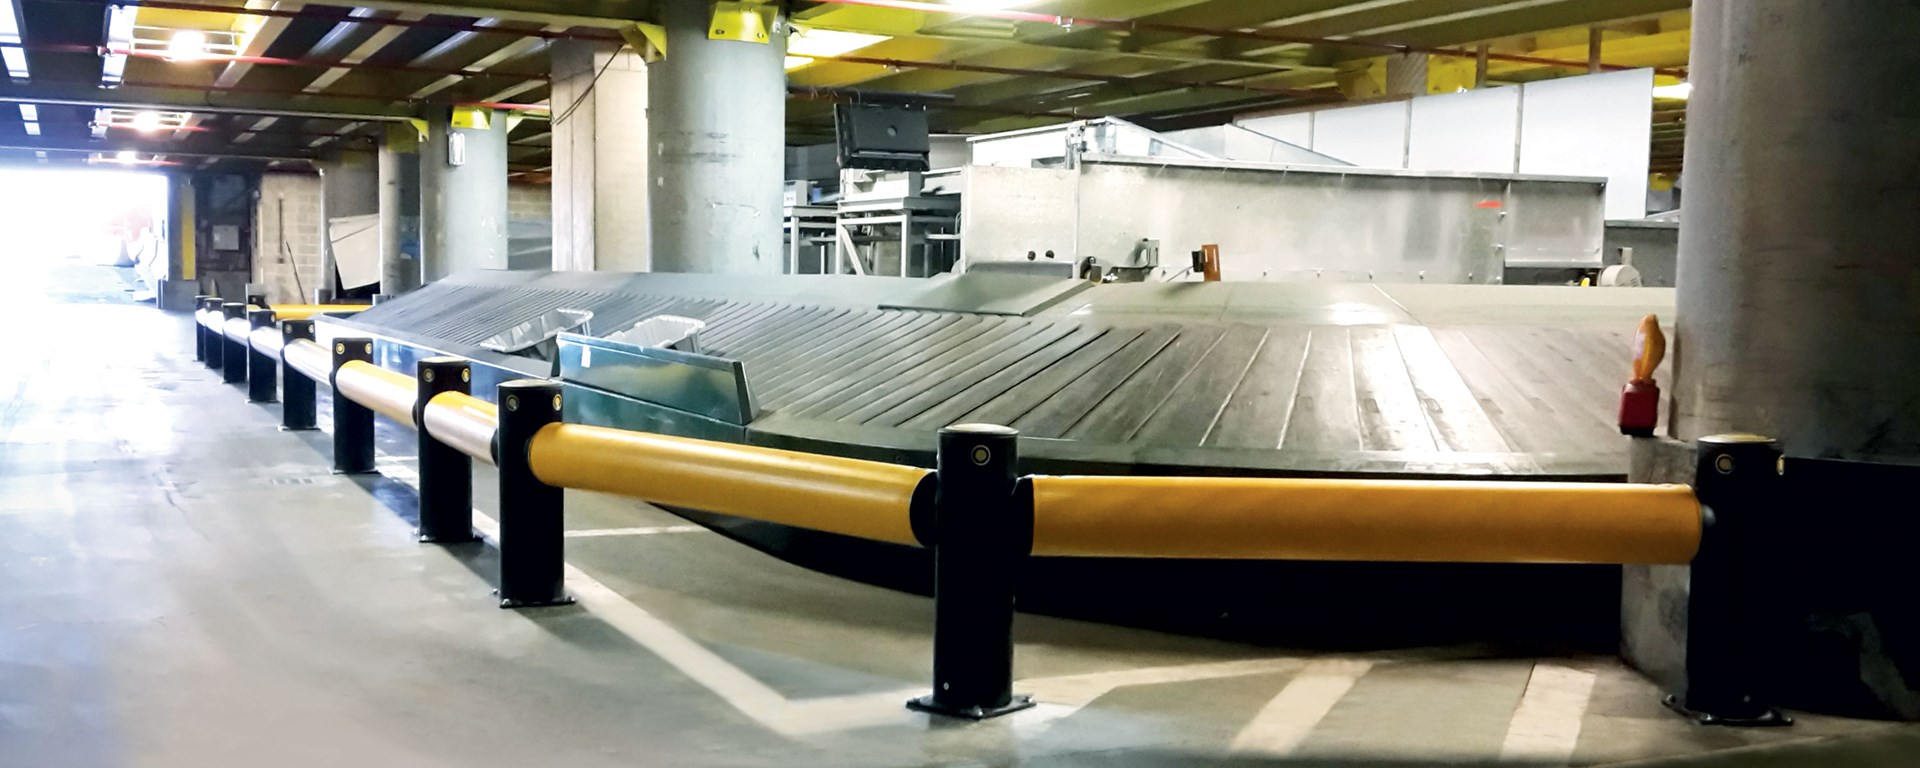 Airport | Baggage conveyor protection for Brussels vehicle fleet